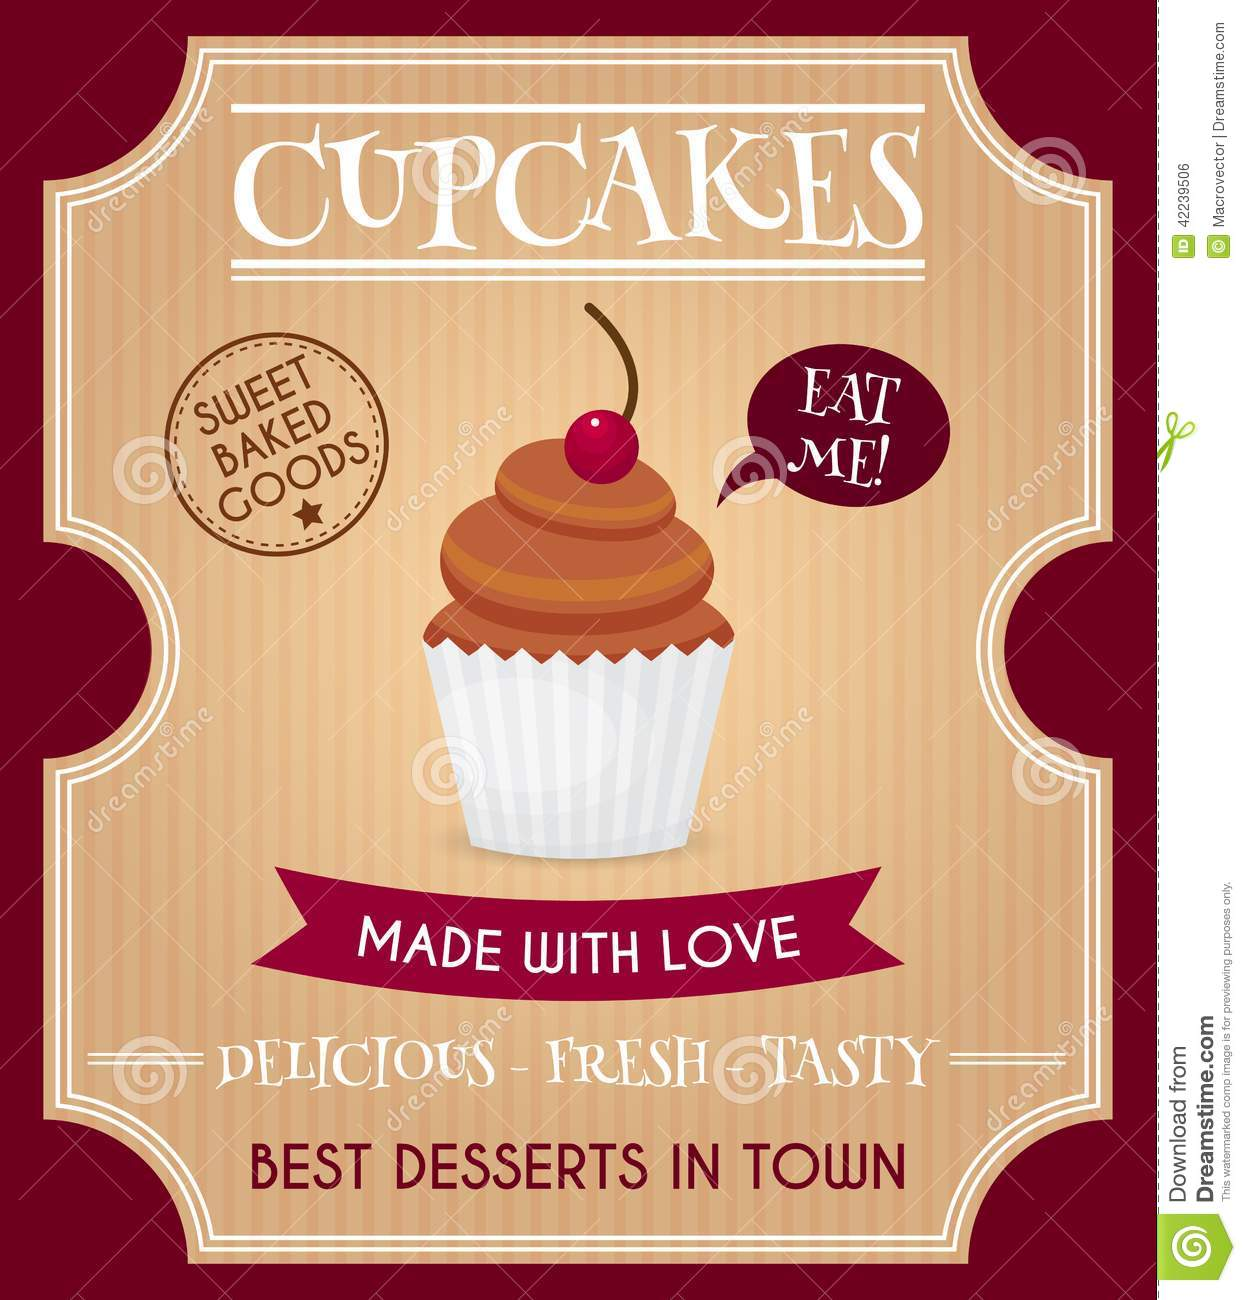 Sweet and tasty delicious food best dessert cupcake retro poster ...